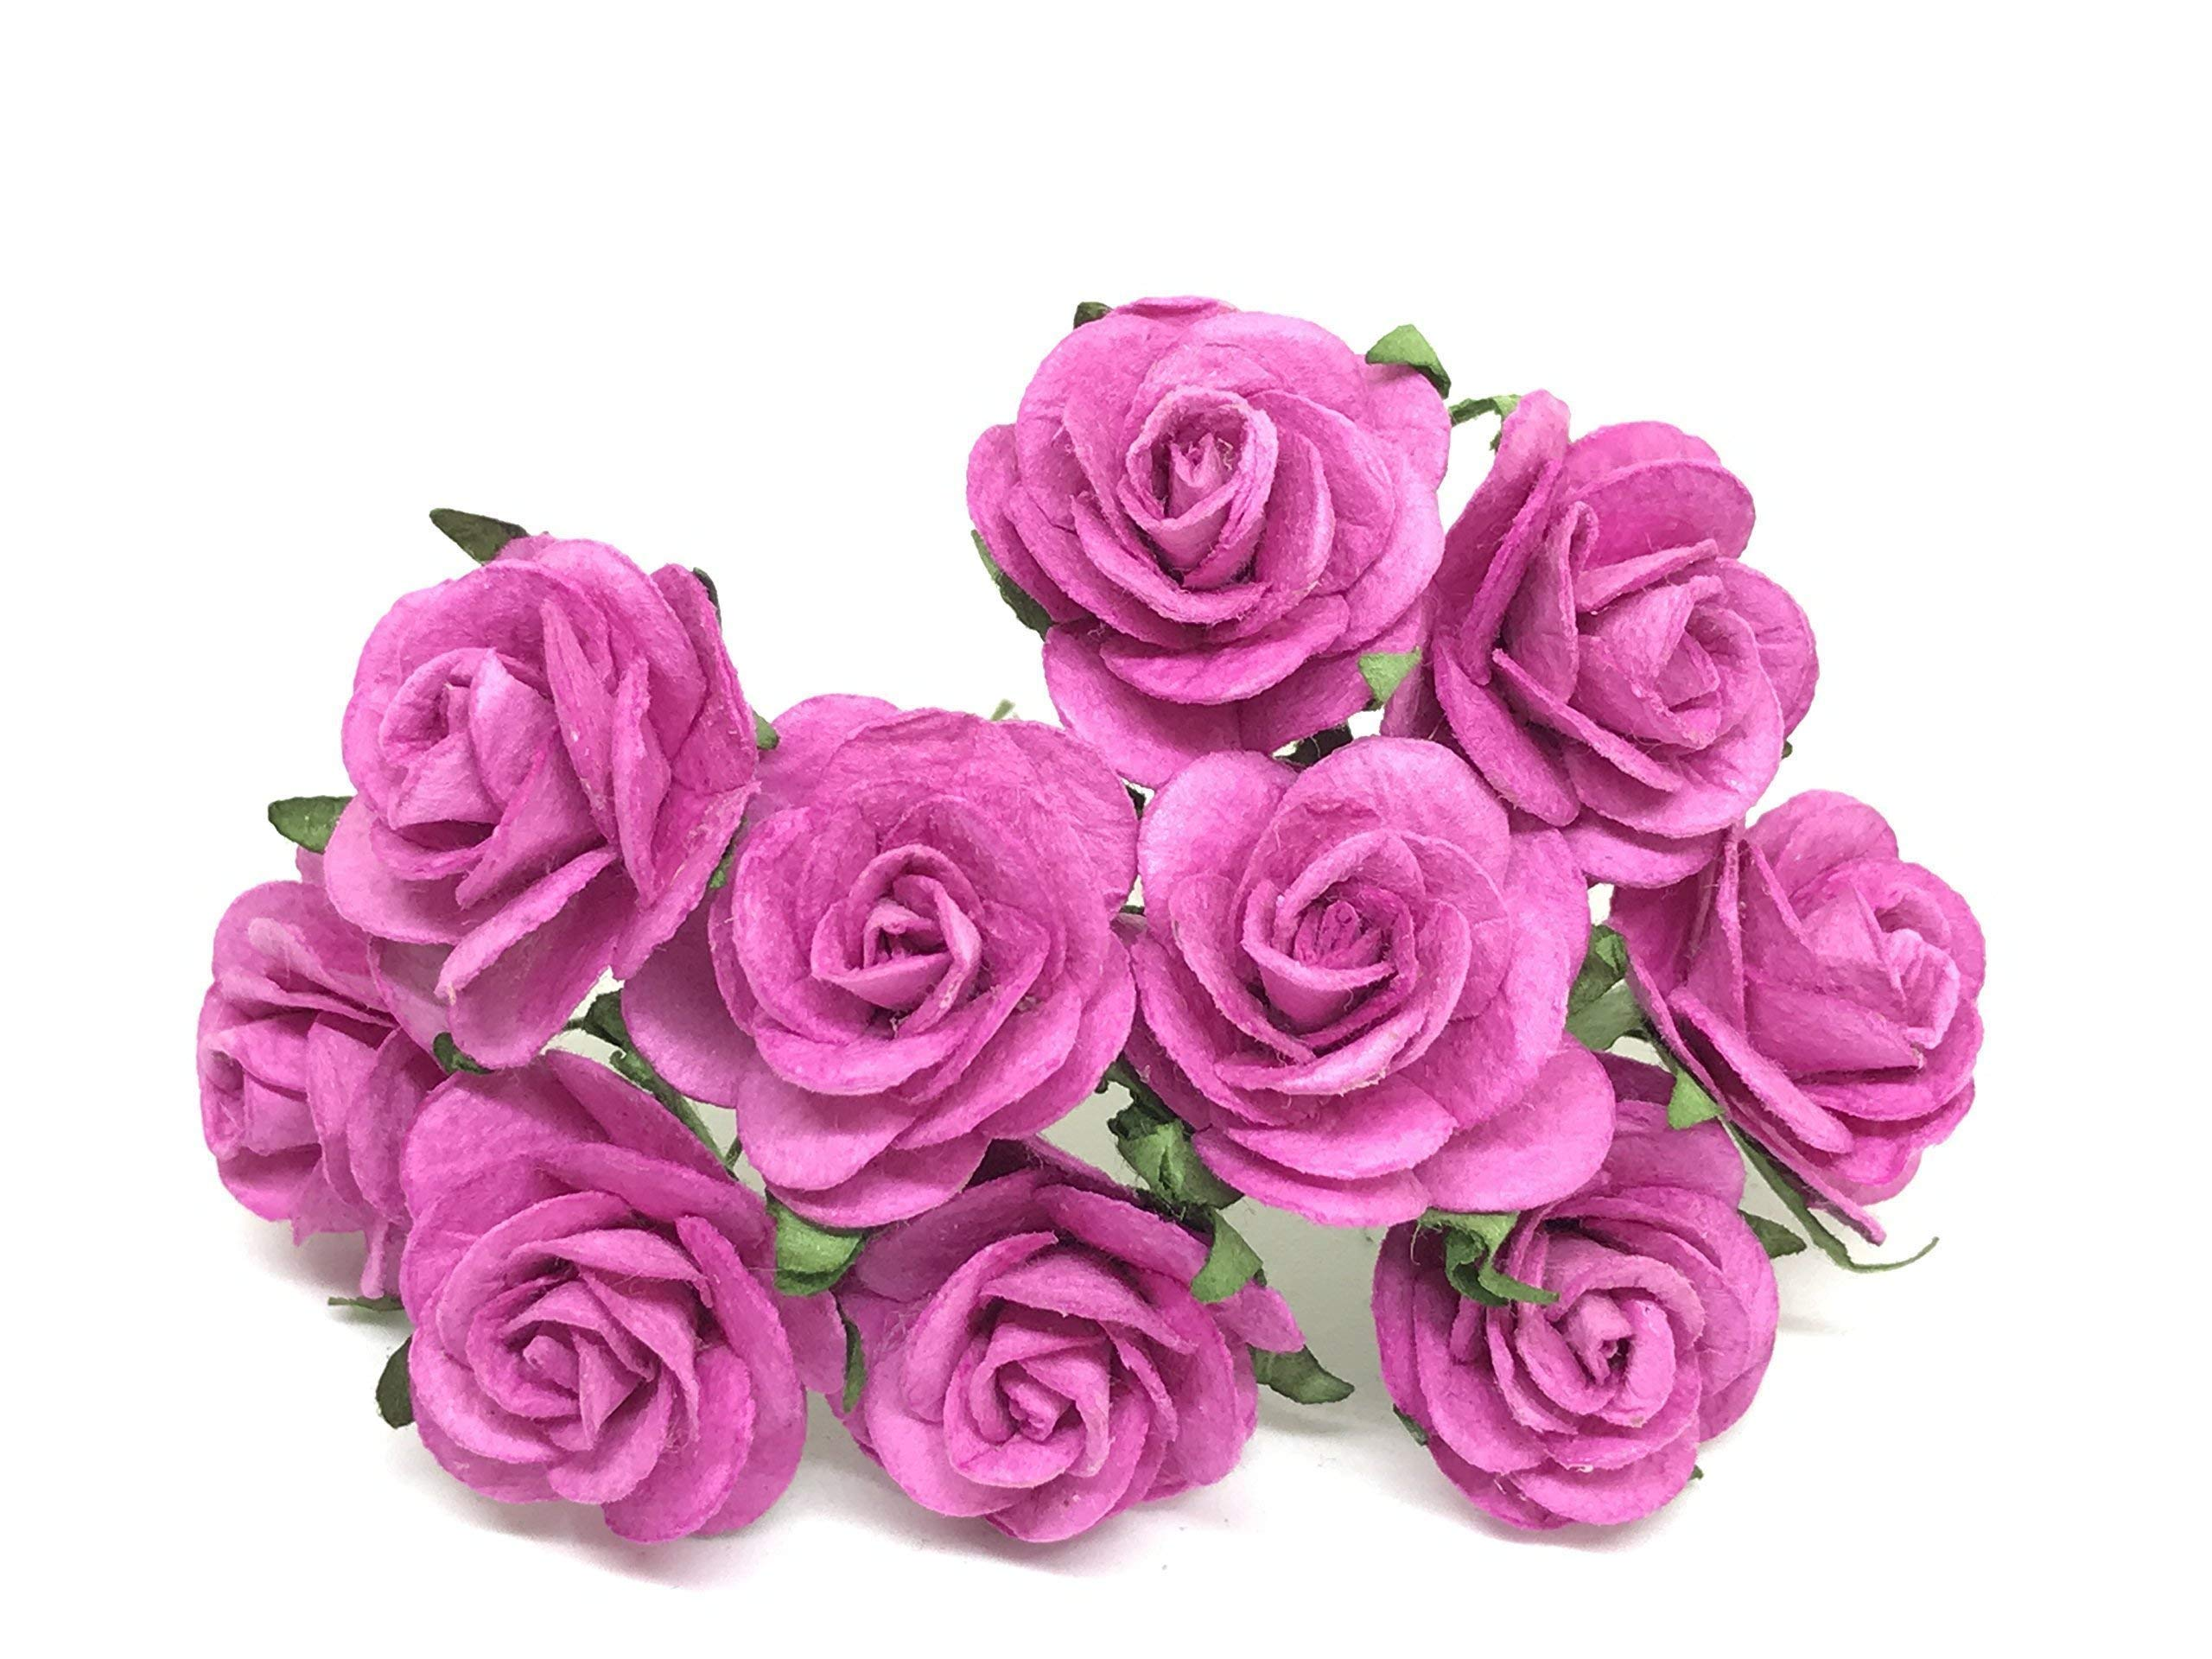 1-Pink-Paper-Flowers-Paper-Rose-Artificial-Flowers-Fake-Flowers-Artificial-Roses-Paper-Craft-Flowers-Paper-Rose-Flower-Mulberry-Paper-Flowers-20-Pieces